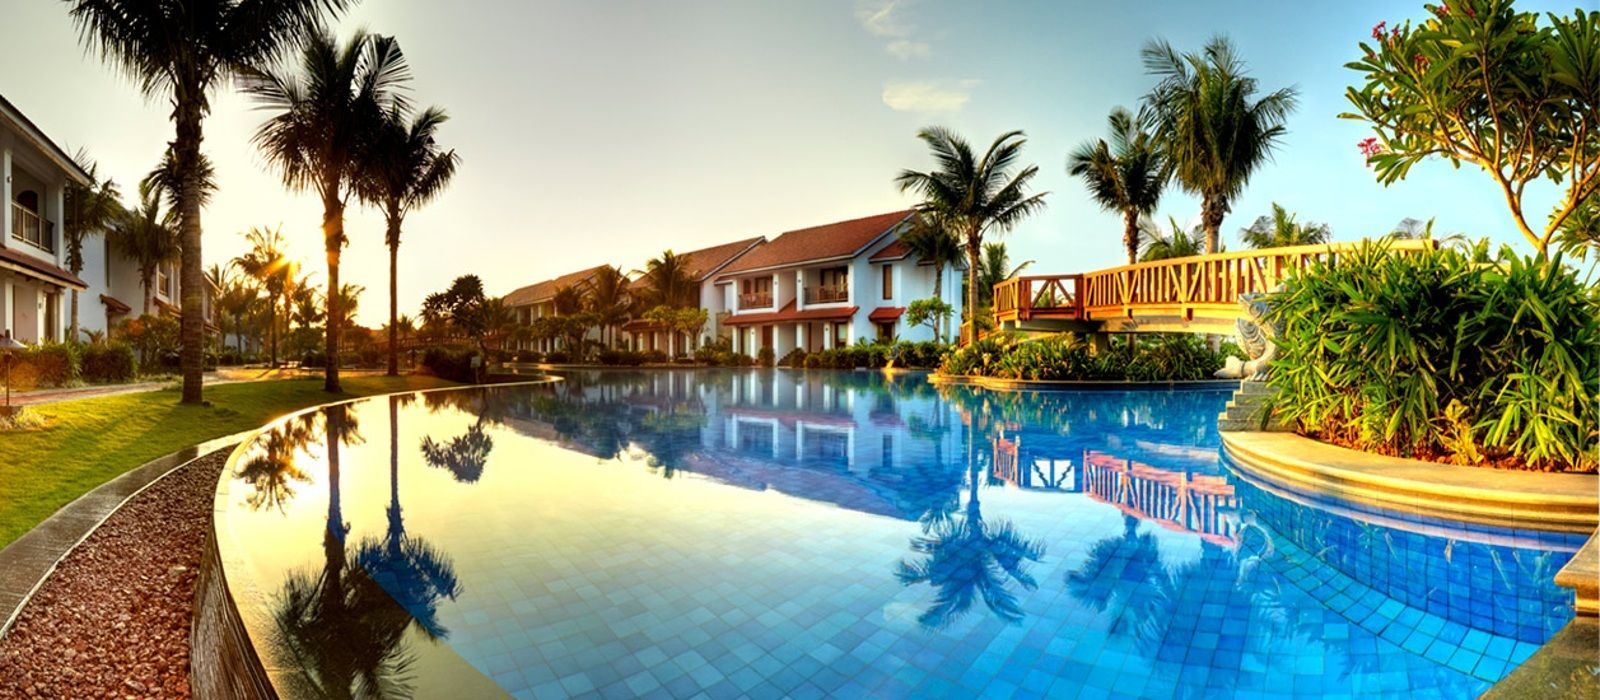 radisson blu resort temple bay hotel in south india | enchanting